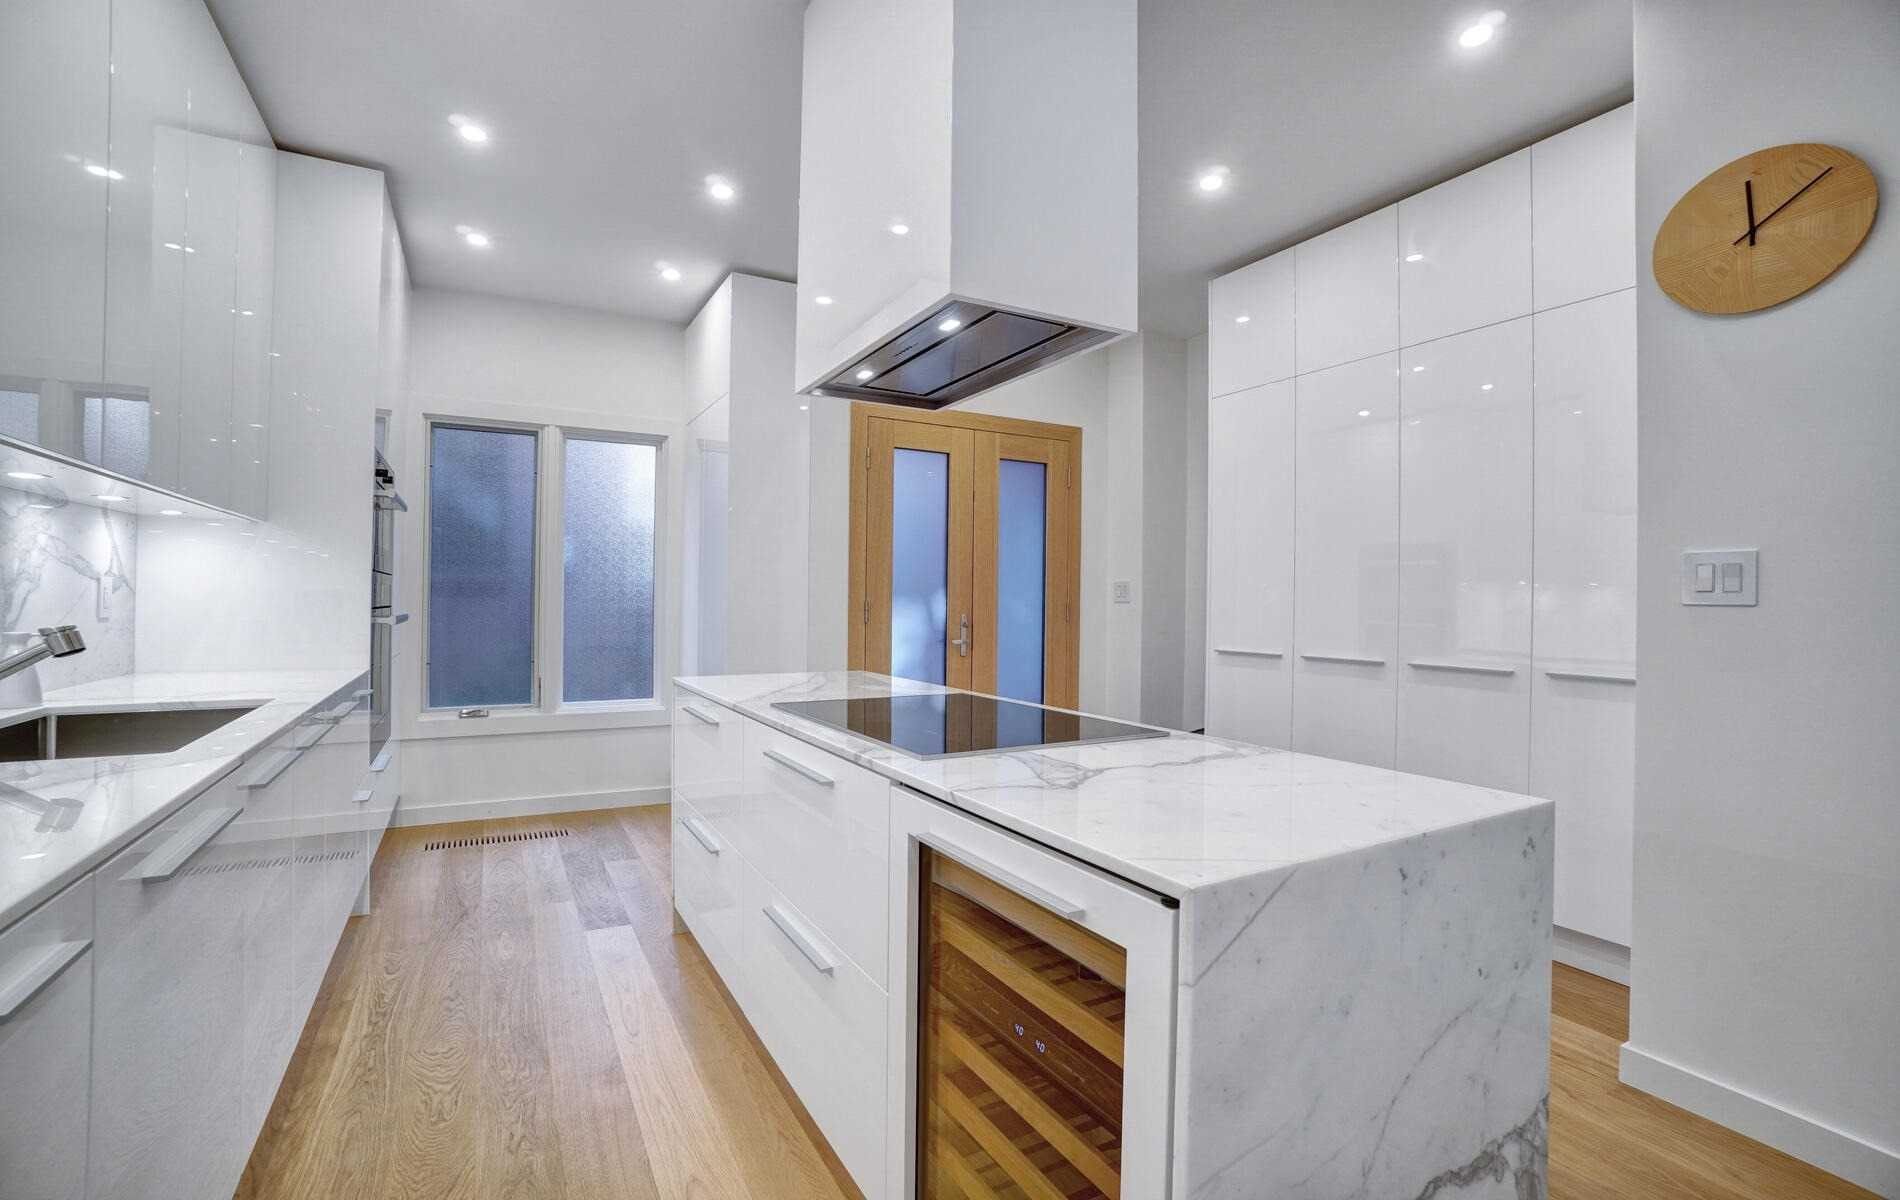 Condo Townhouse For Sale In Toronto , 3 Bedrooms Bedrooms, ,3 BathroomsBathrooms,Condo Townhouse,For Sale,Tranby